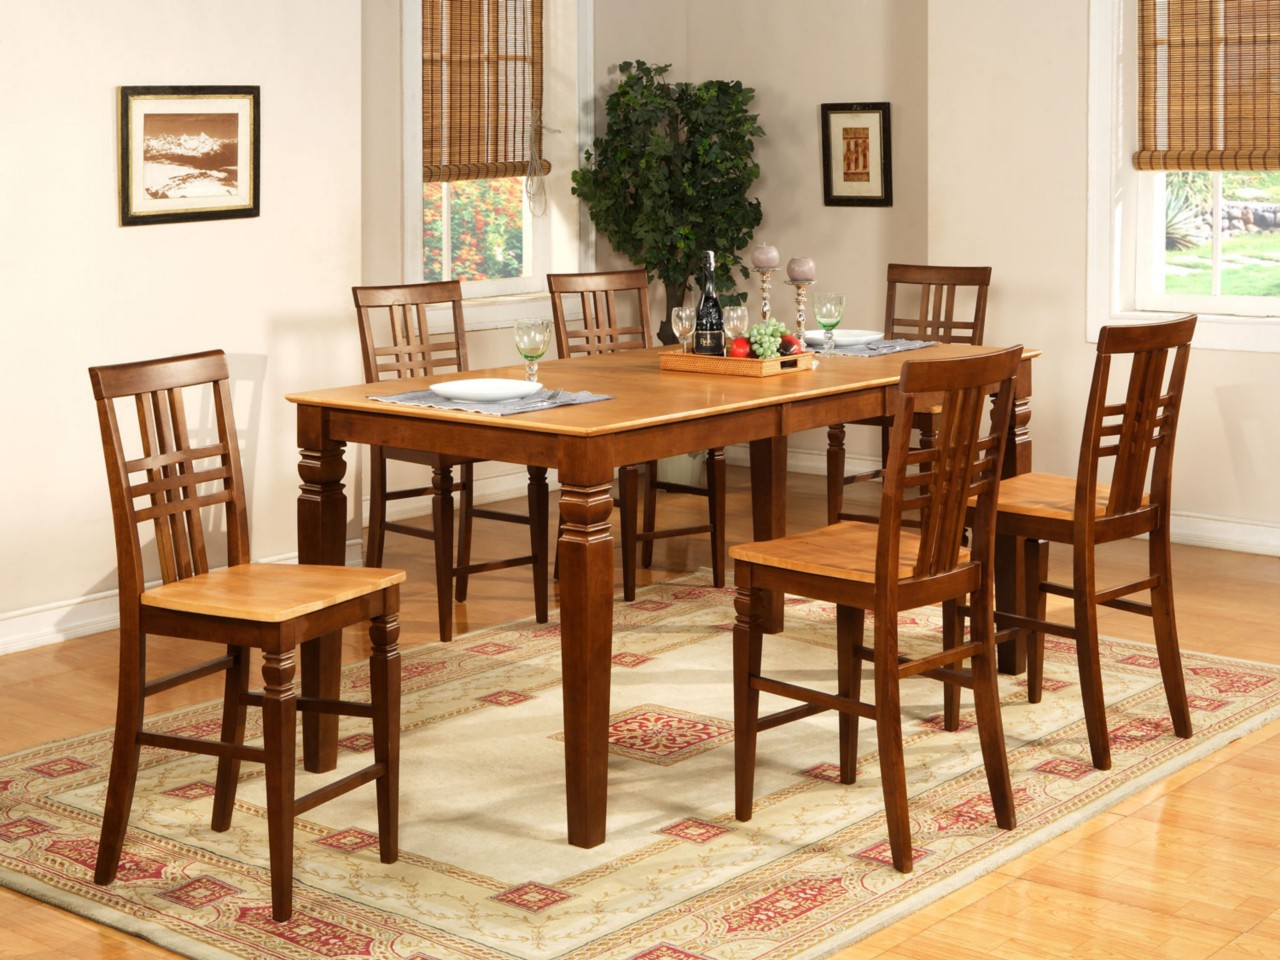 counter height table jofran dining set kitchen table efurnituremart bar height kitchen table 9PC DINETTE KITCHEN COUNTER HEIGHT TABLE WITH 8 CHAIRS IN ESPRESSO